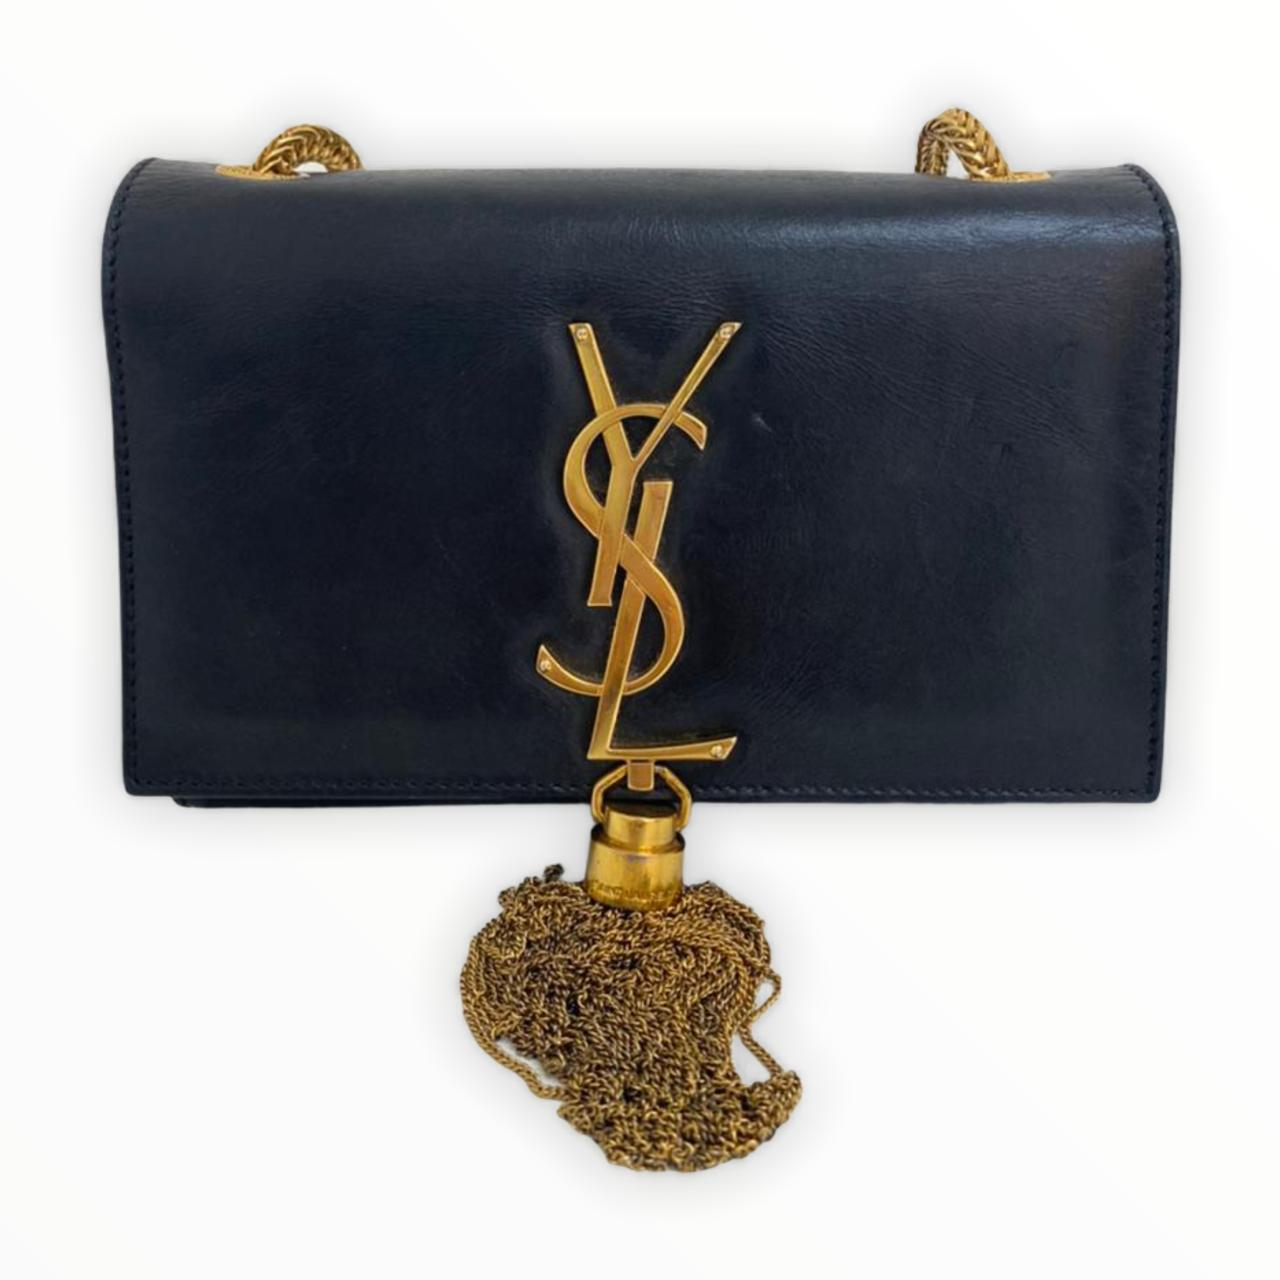 Bolsa Yves Saint Laurent Kate Crossbody Preta